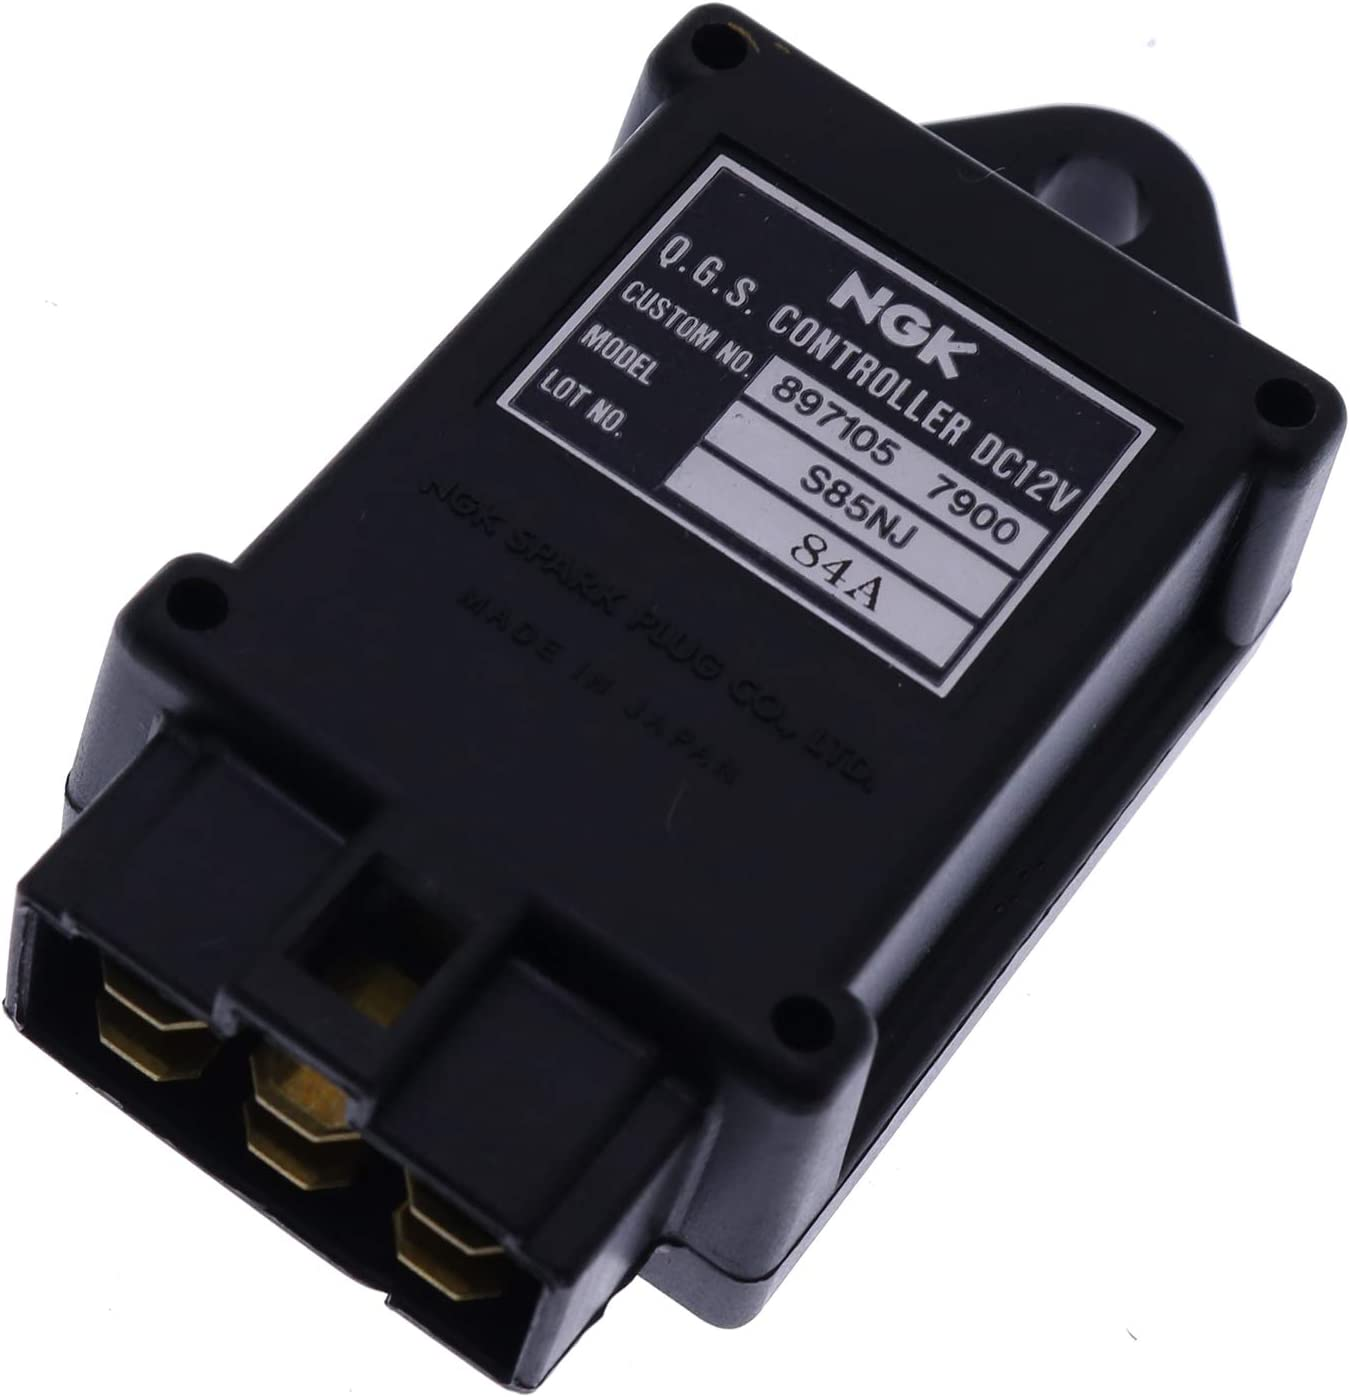 Solarhome Time Relay Max 78% OFF 8970405010 8970405011 12V 6 with Pins Selling and selling I for